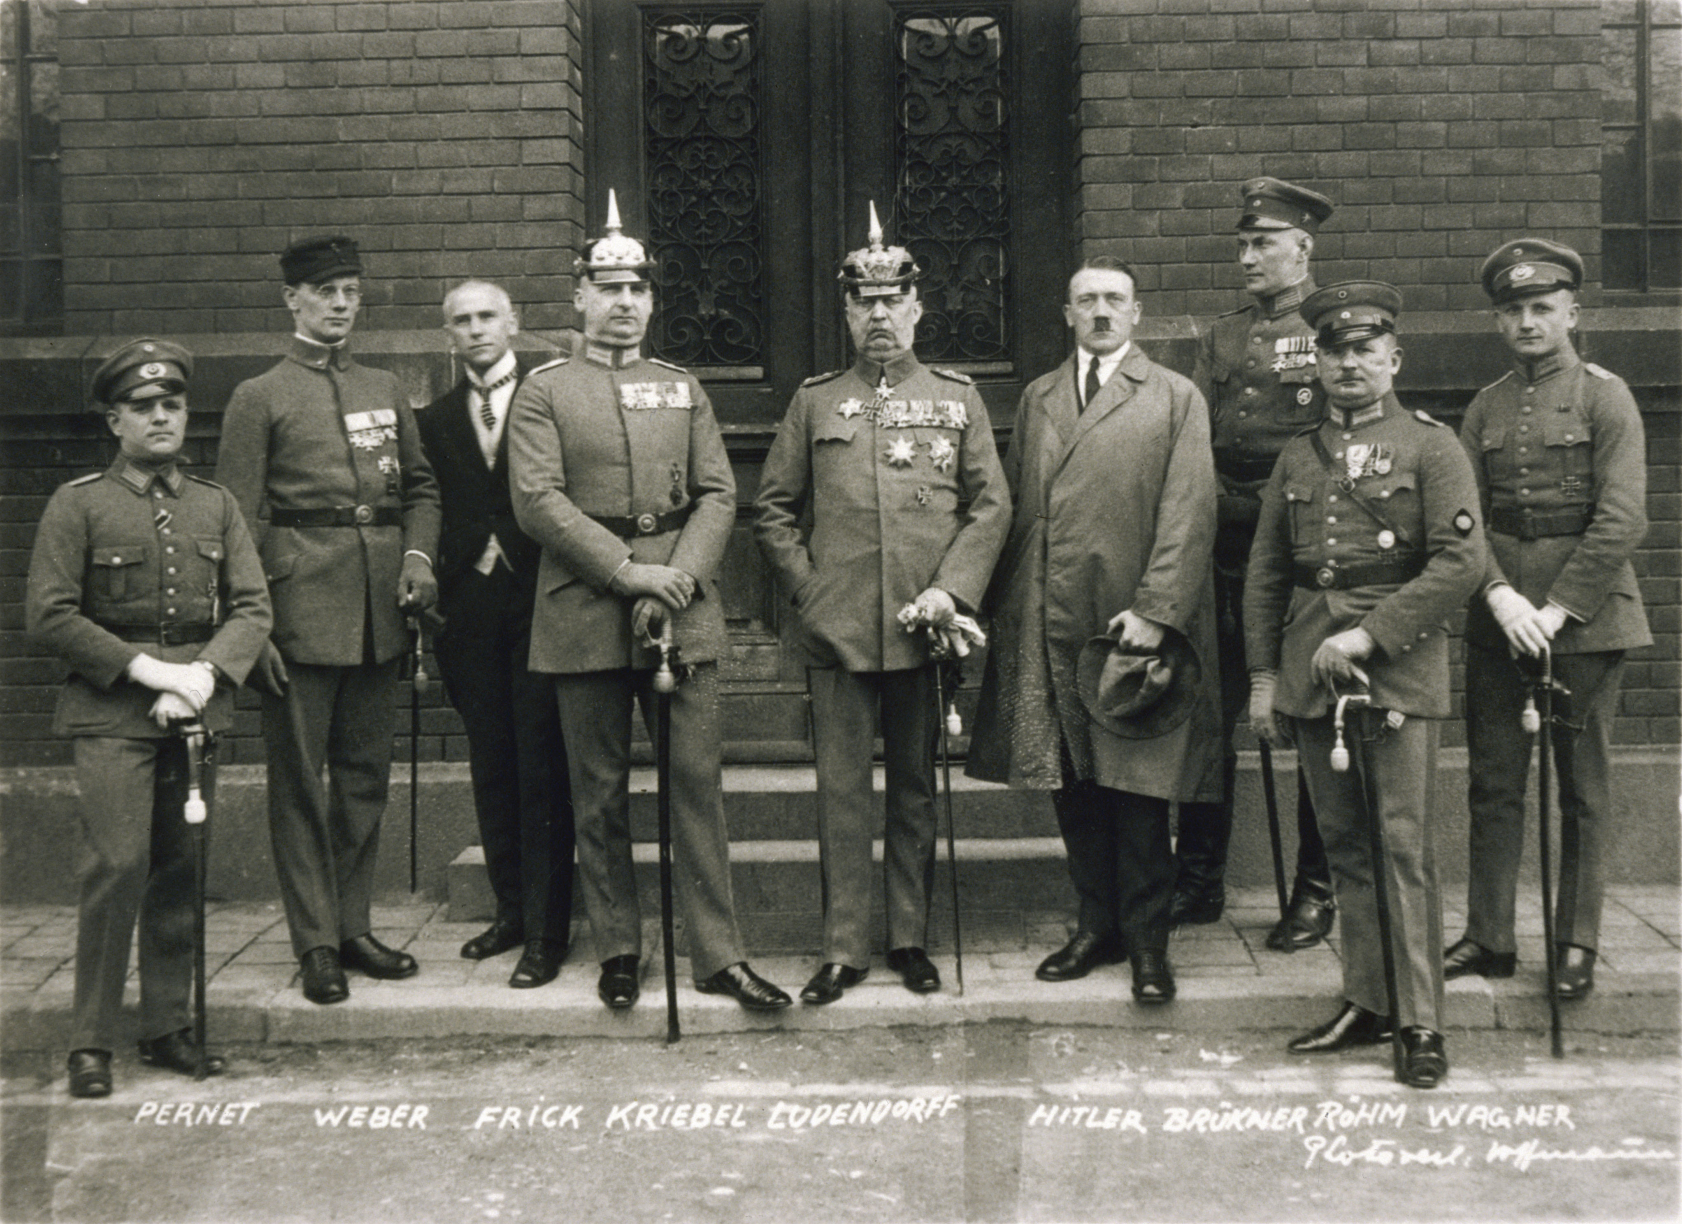 Defendants in the Beer Hall Putsch trial. From left to right: Pernet, Weber, Frick, Kiebel, Ludendorff, Hitler, Bruckner, Röhm, and Wagner. Note that only two of the defendants (Hitler and Frick) were dressed in civilian clothing.